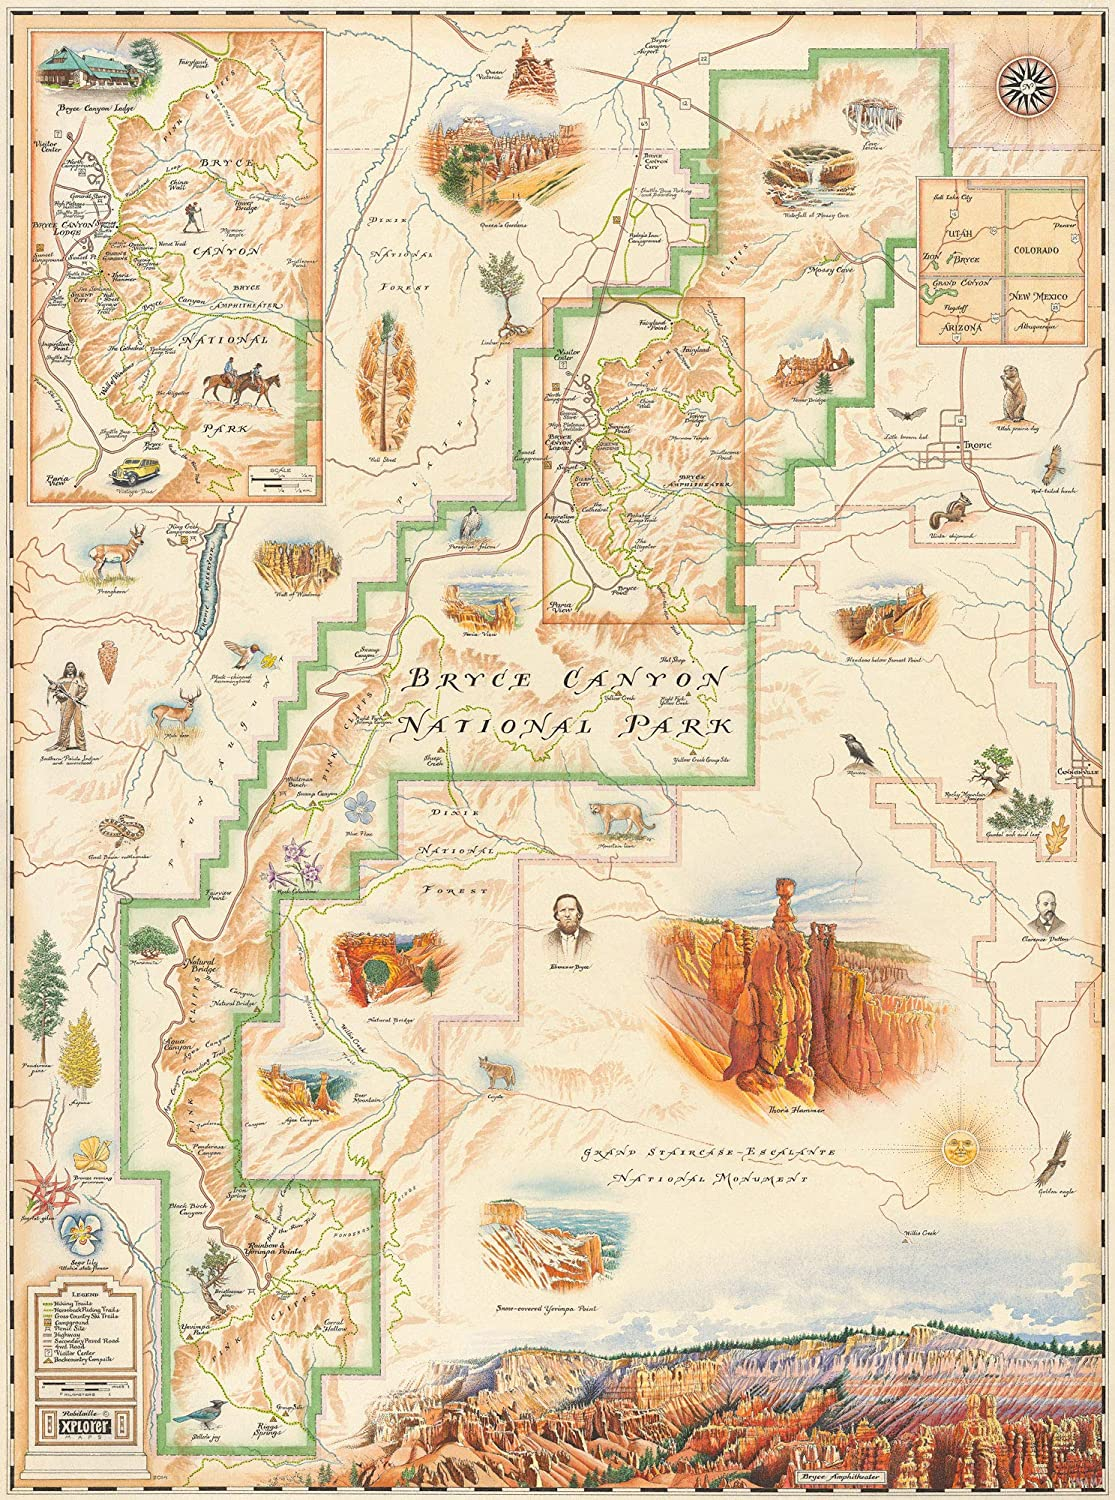 National Parks In New Mexico Map.Amazon Com Bryce Canyon National Park Map Authentic Hand Drawn